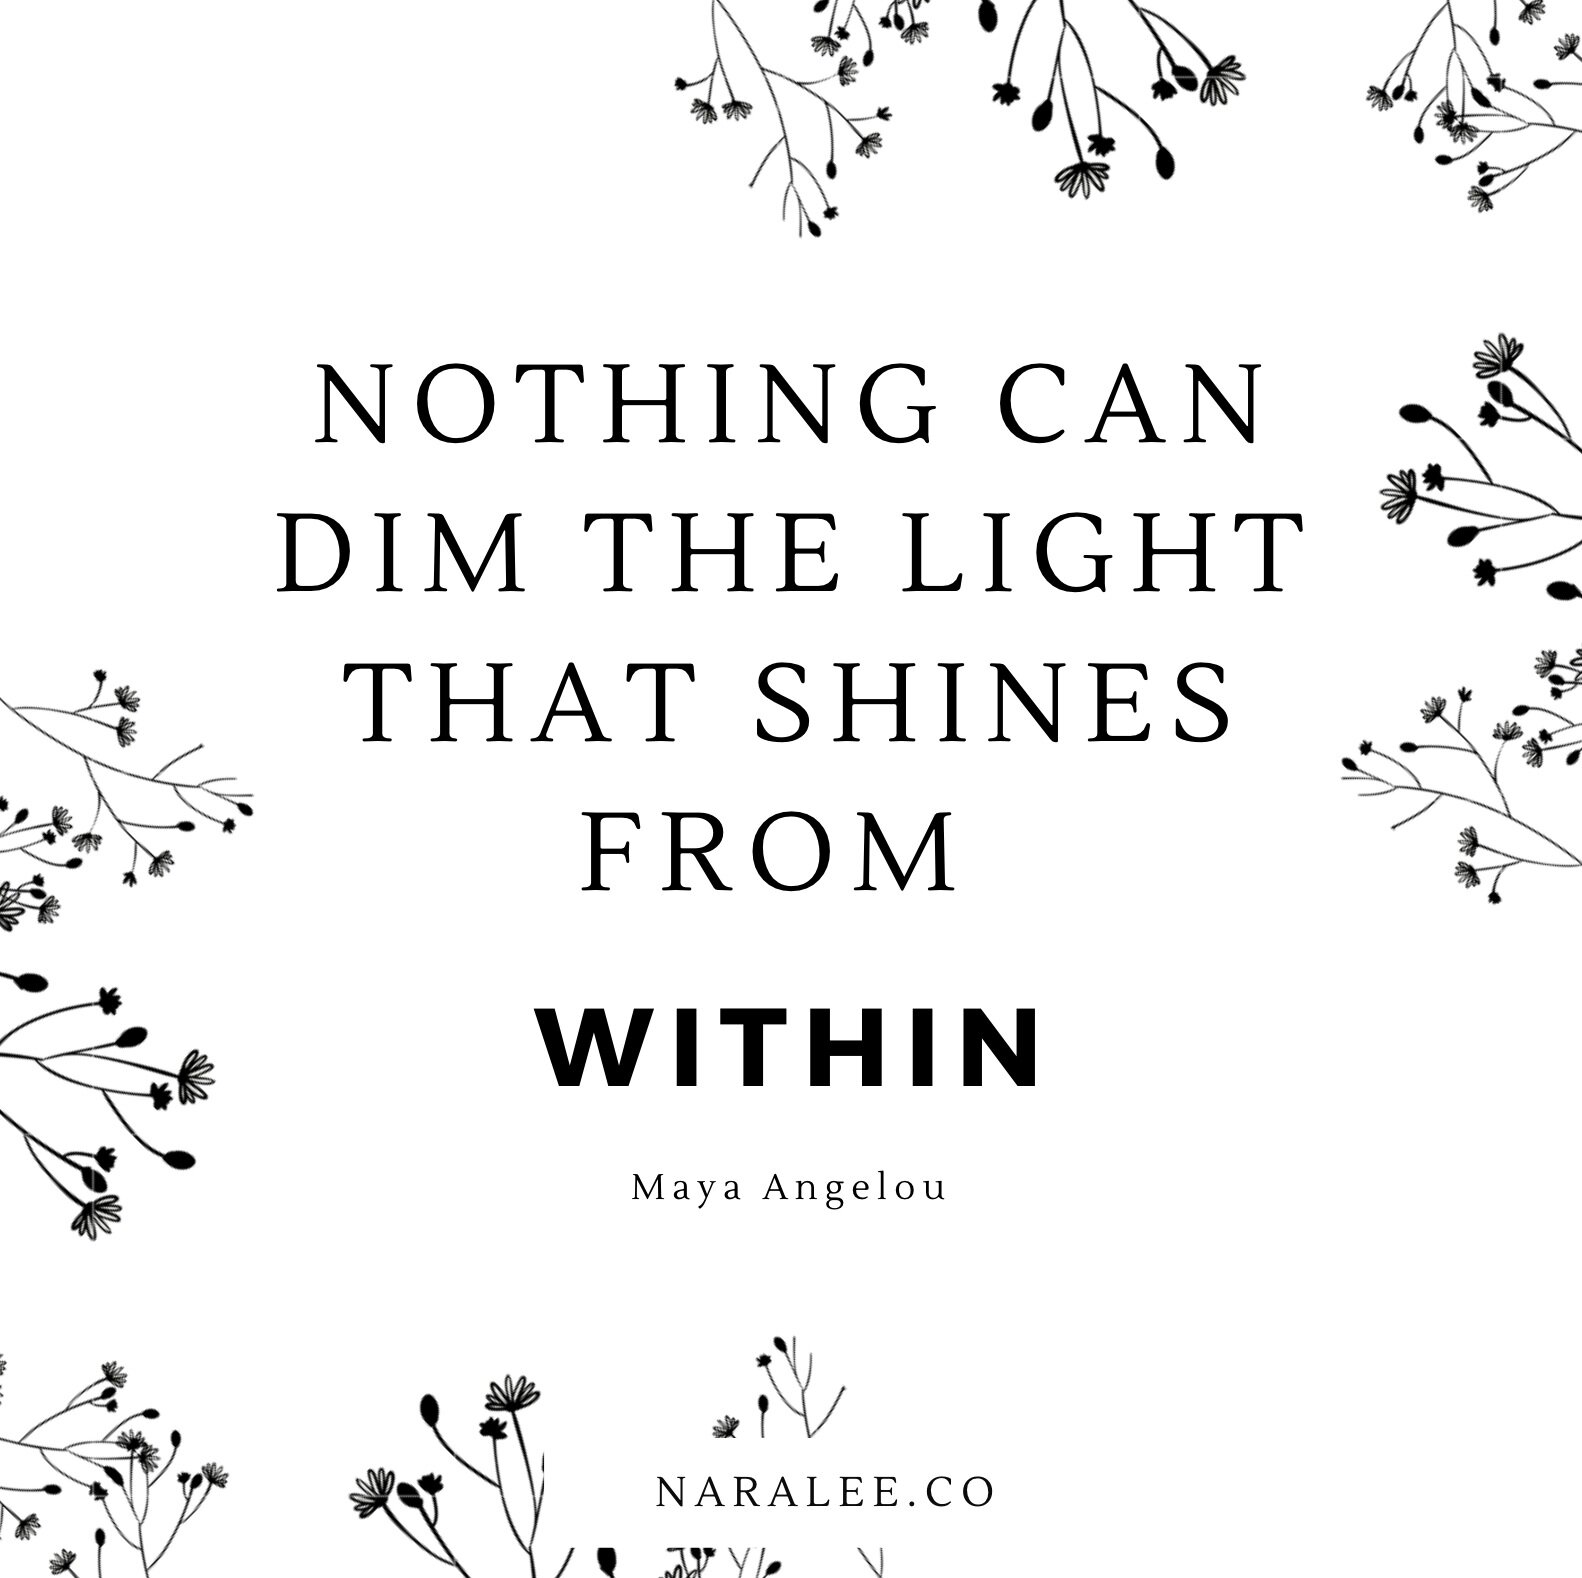 maya+angelou+-+nothing+can+dim+the+light+that+shines+from+within+-+naralee.co.jpg